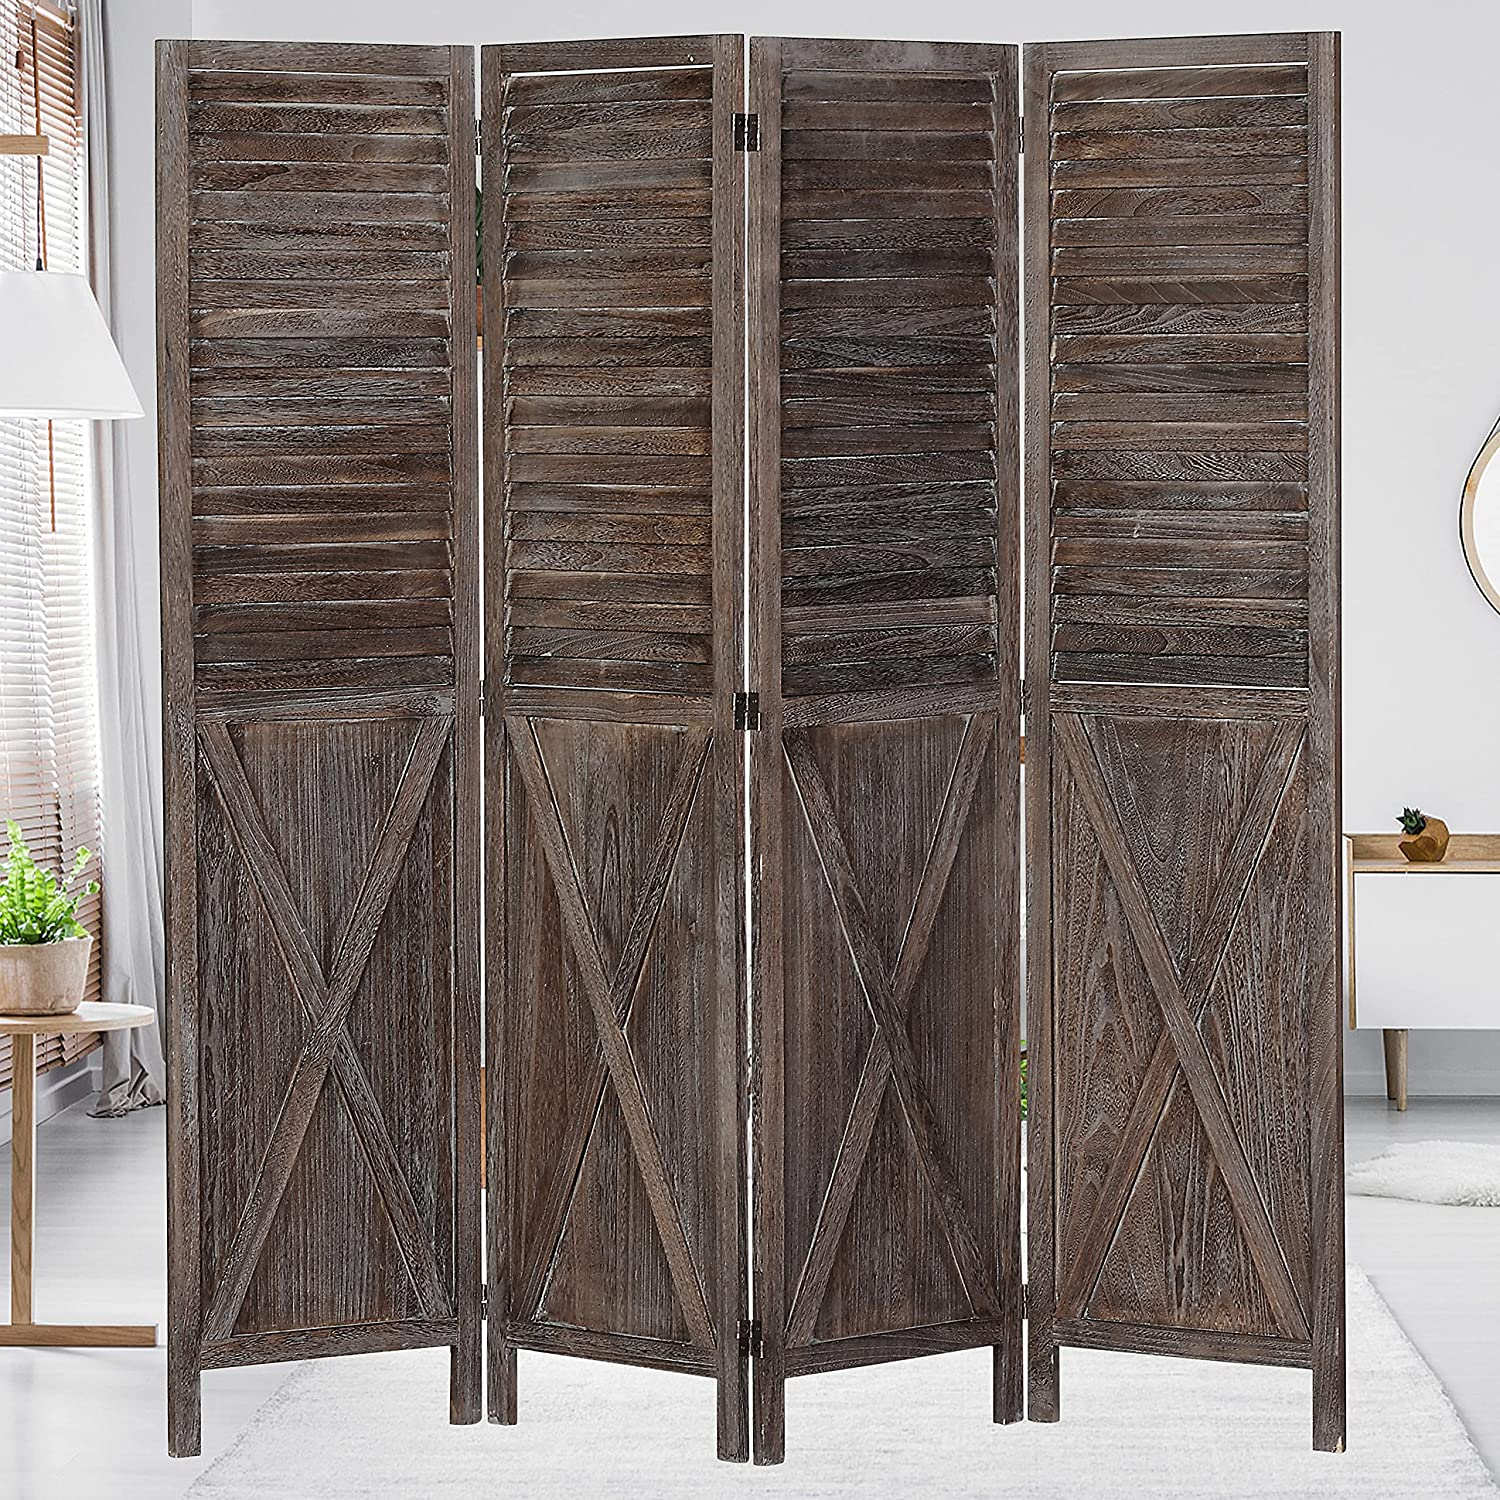 Wnutrees 4 Panel Rustic Mail order cheap Wood Room Farmhouse Divider 5.8 Tall security Ft